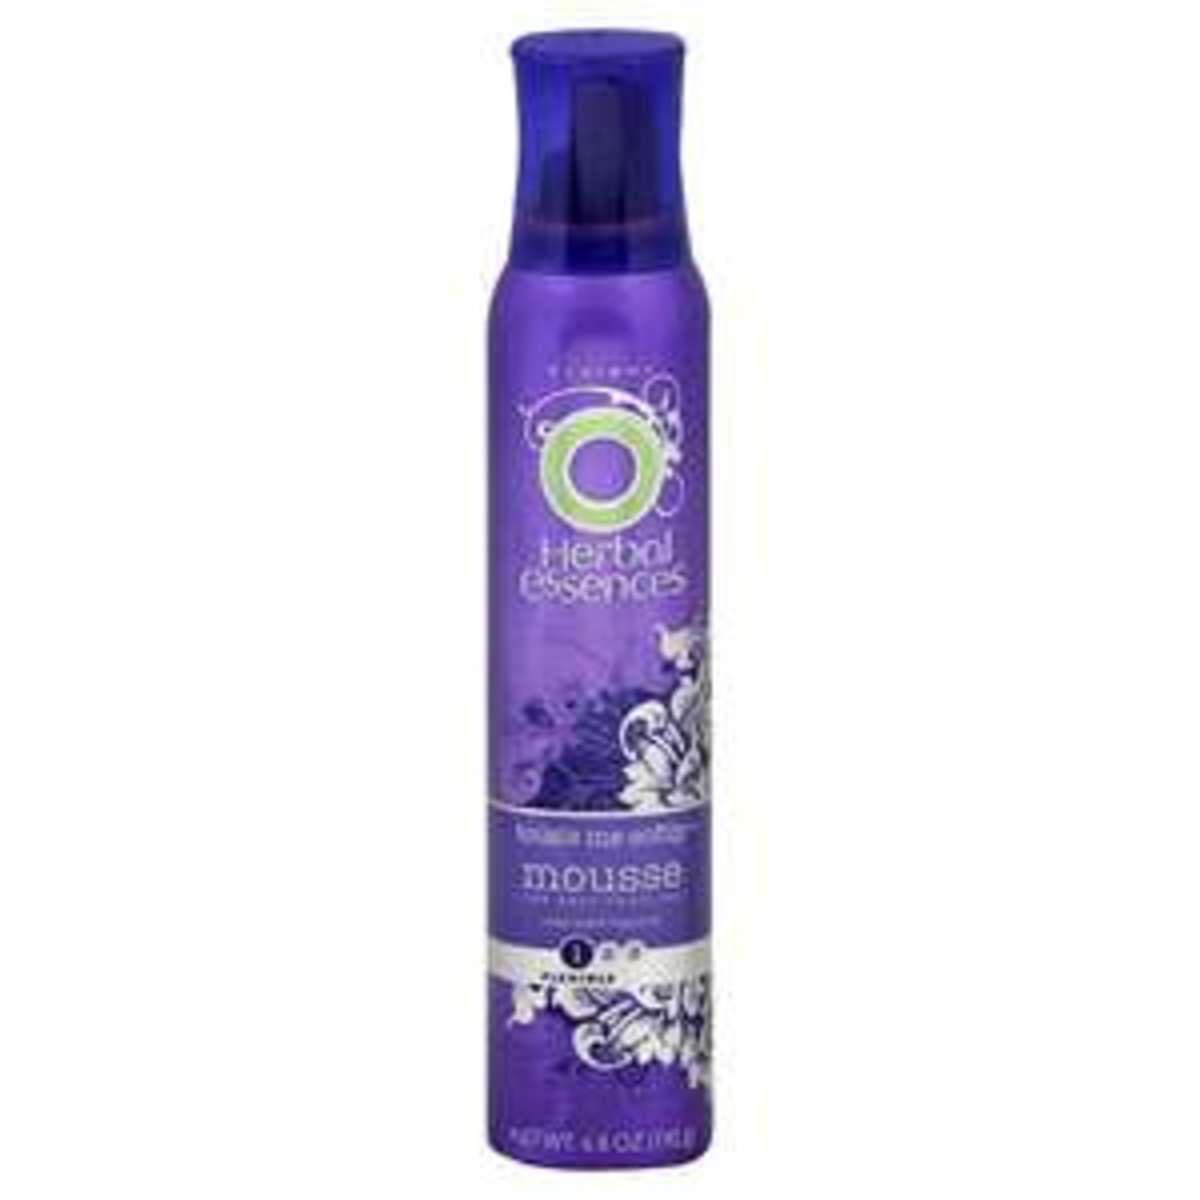 Herbal Essences Tousle Me Softly Mousse, with head up, scruch this into hair from the bottom up. Gently pat some onto the top of hair if it's a little frizzy. You're done !